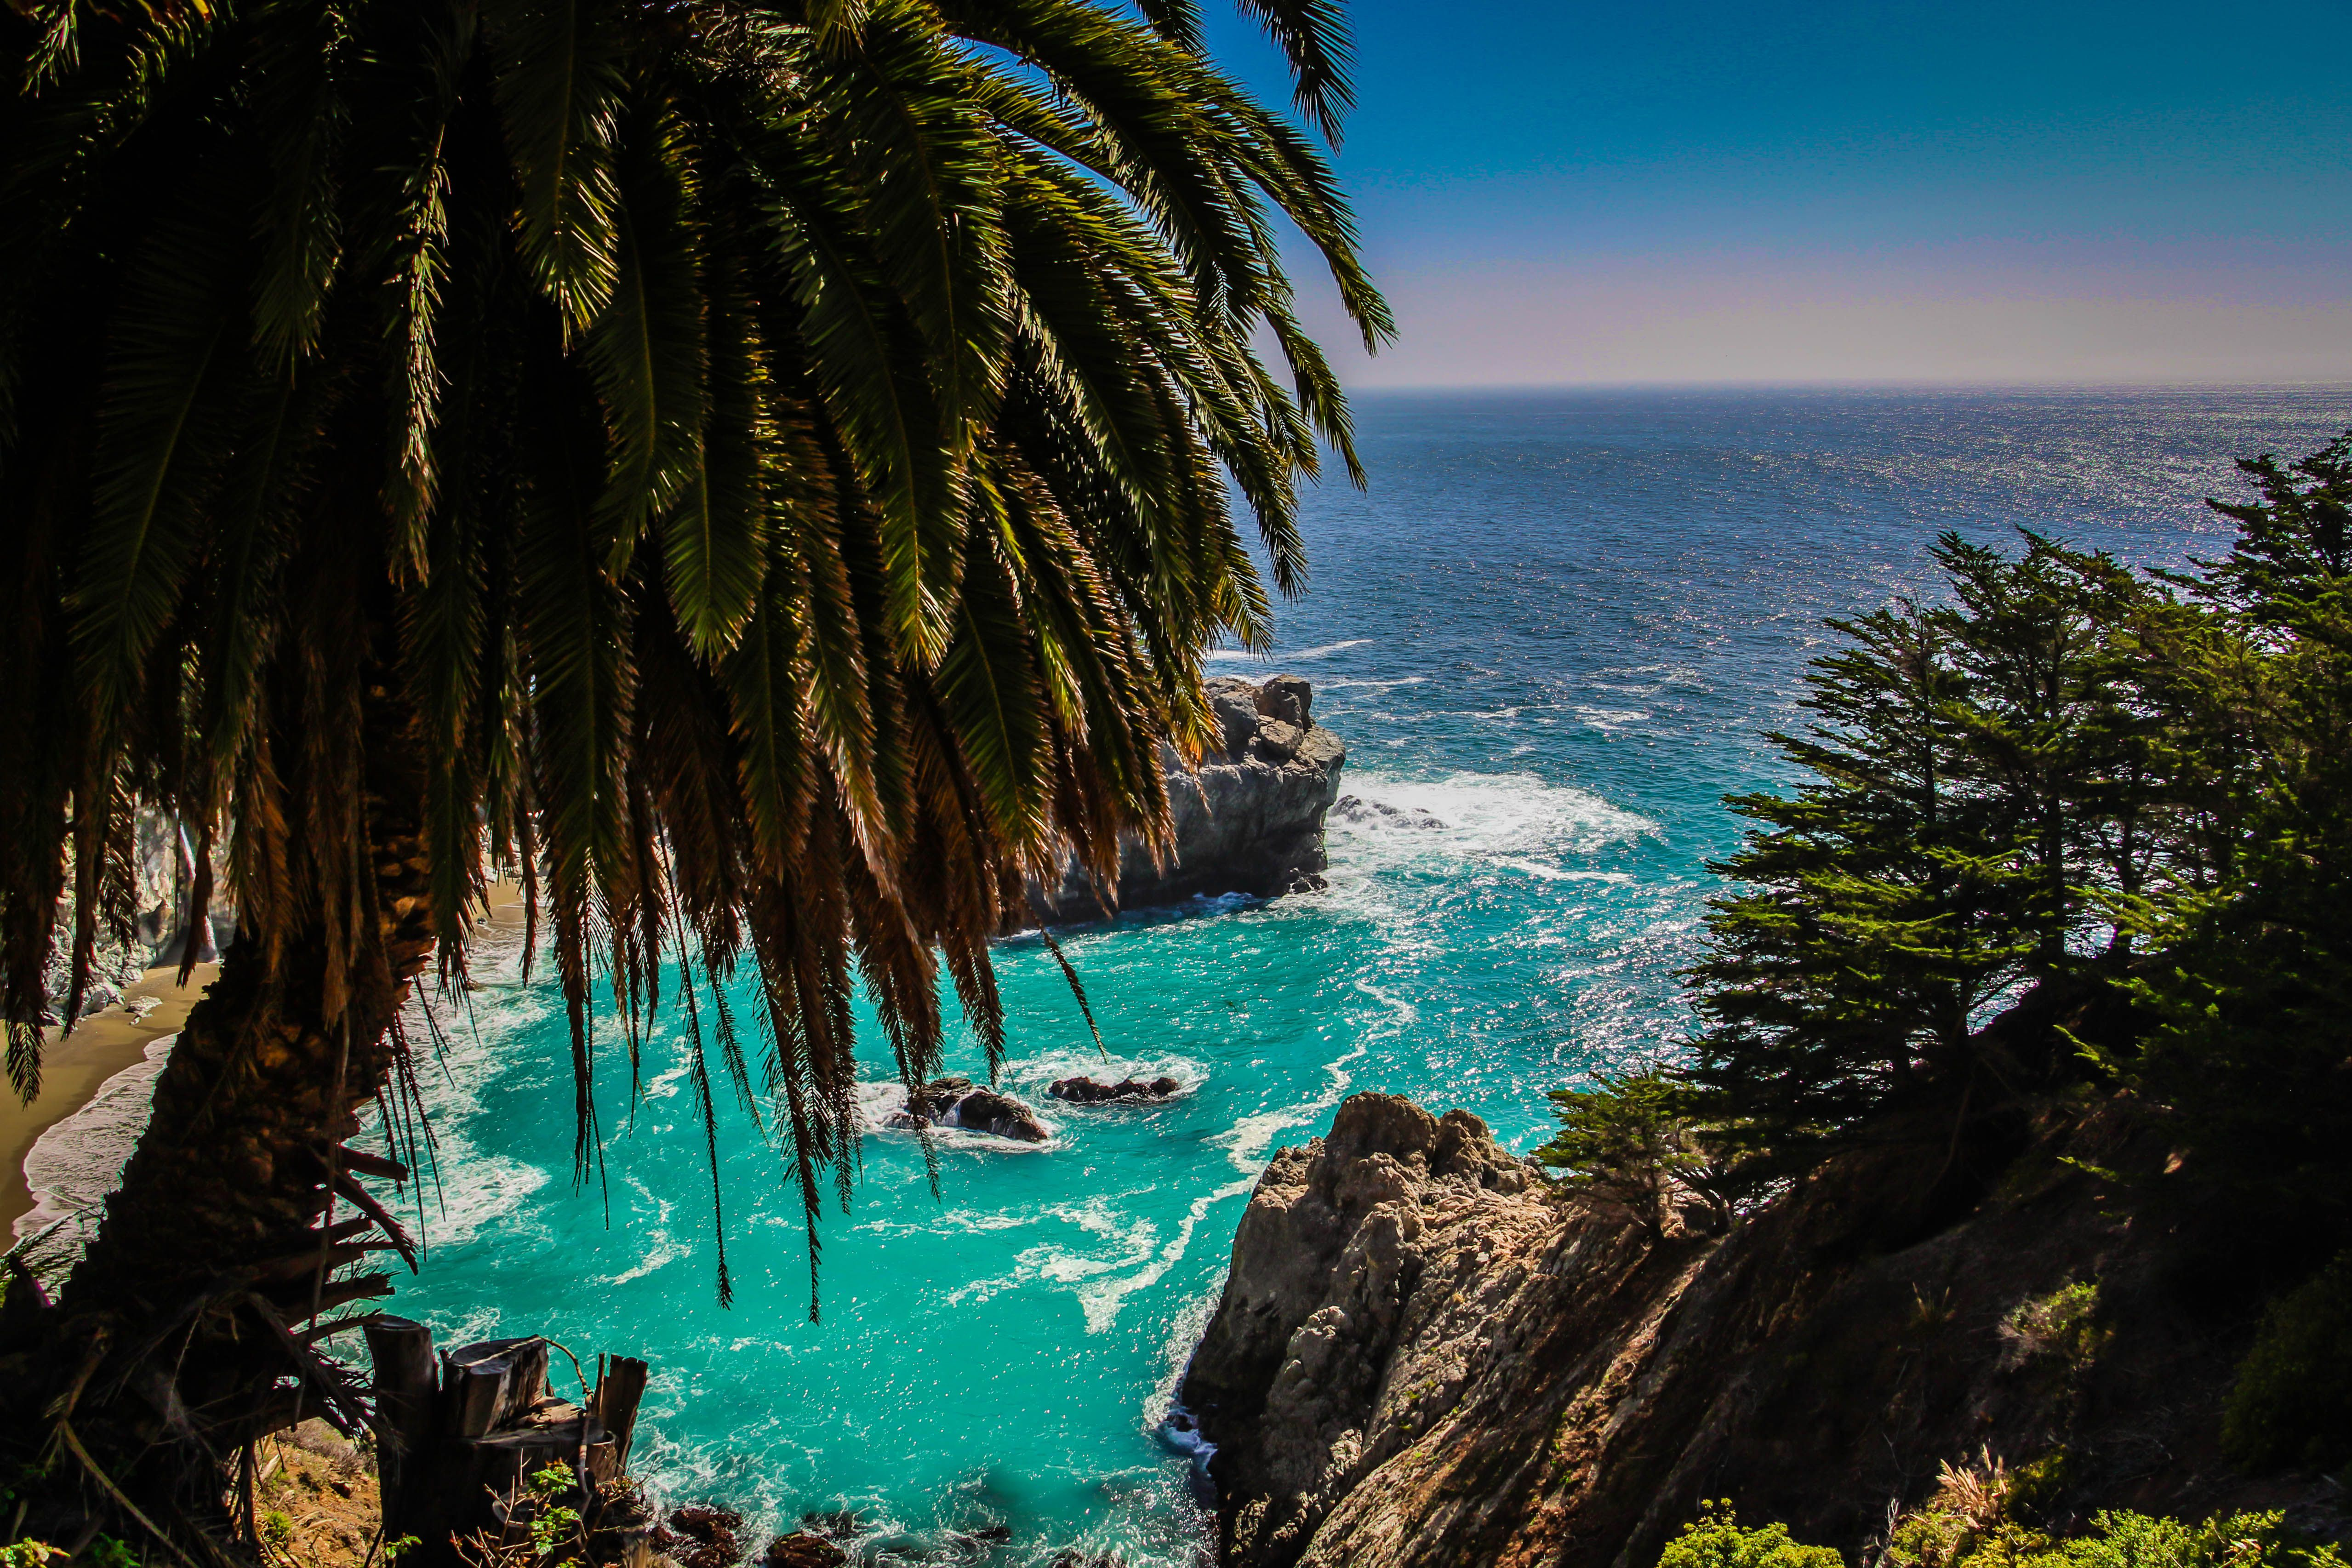 Wallpaper Download Palm tree over McWay Cove in Big Sur